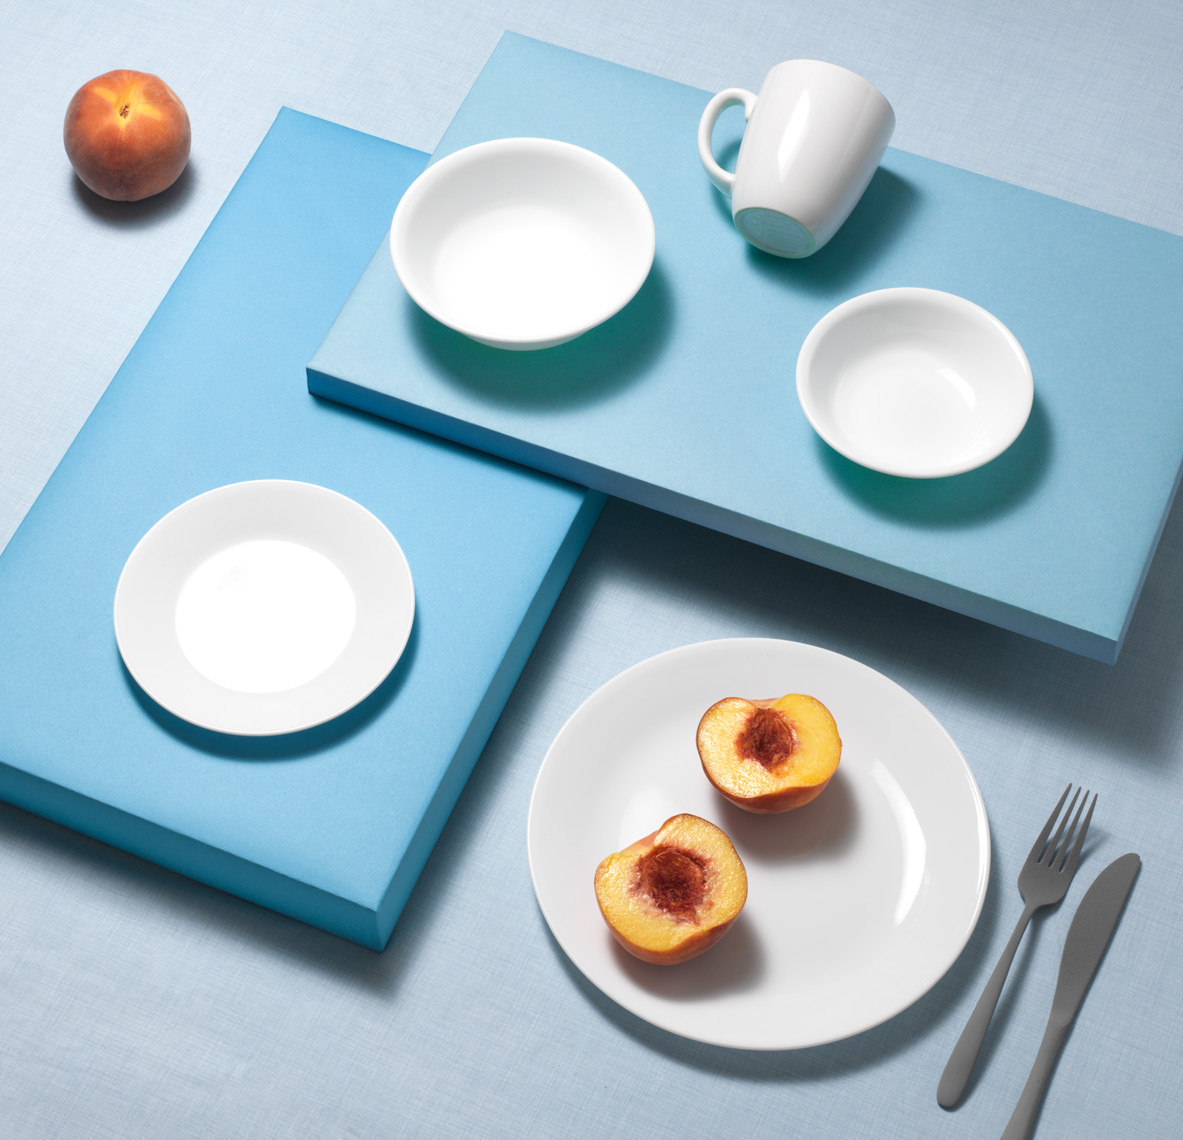 correlle plates and mug on blue with peaches